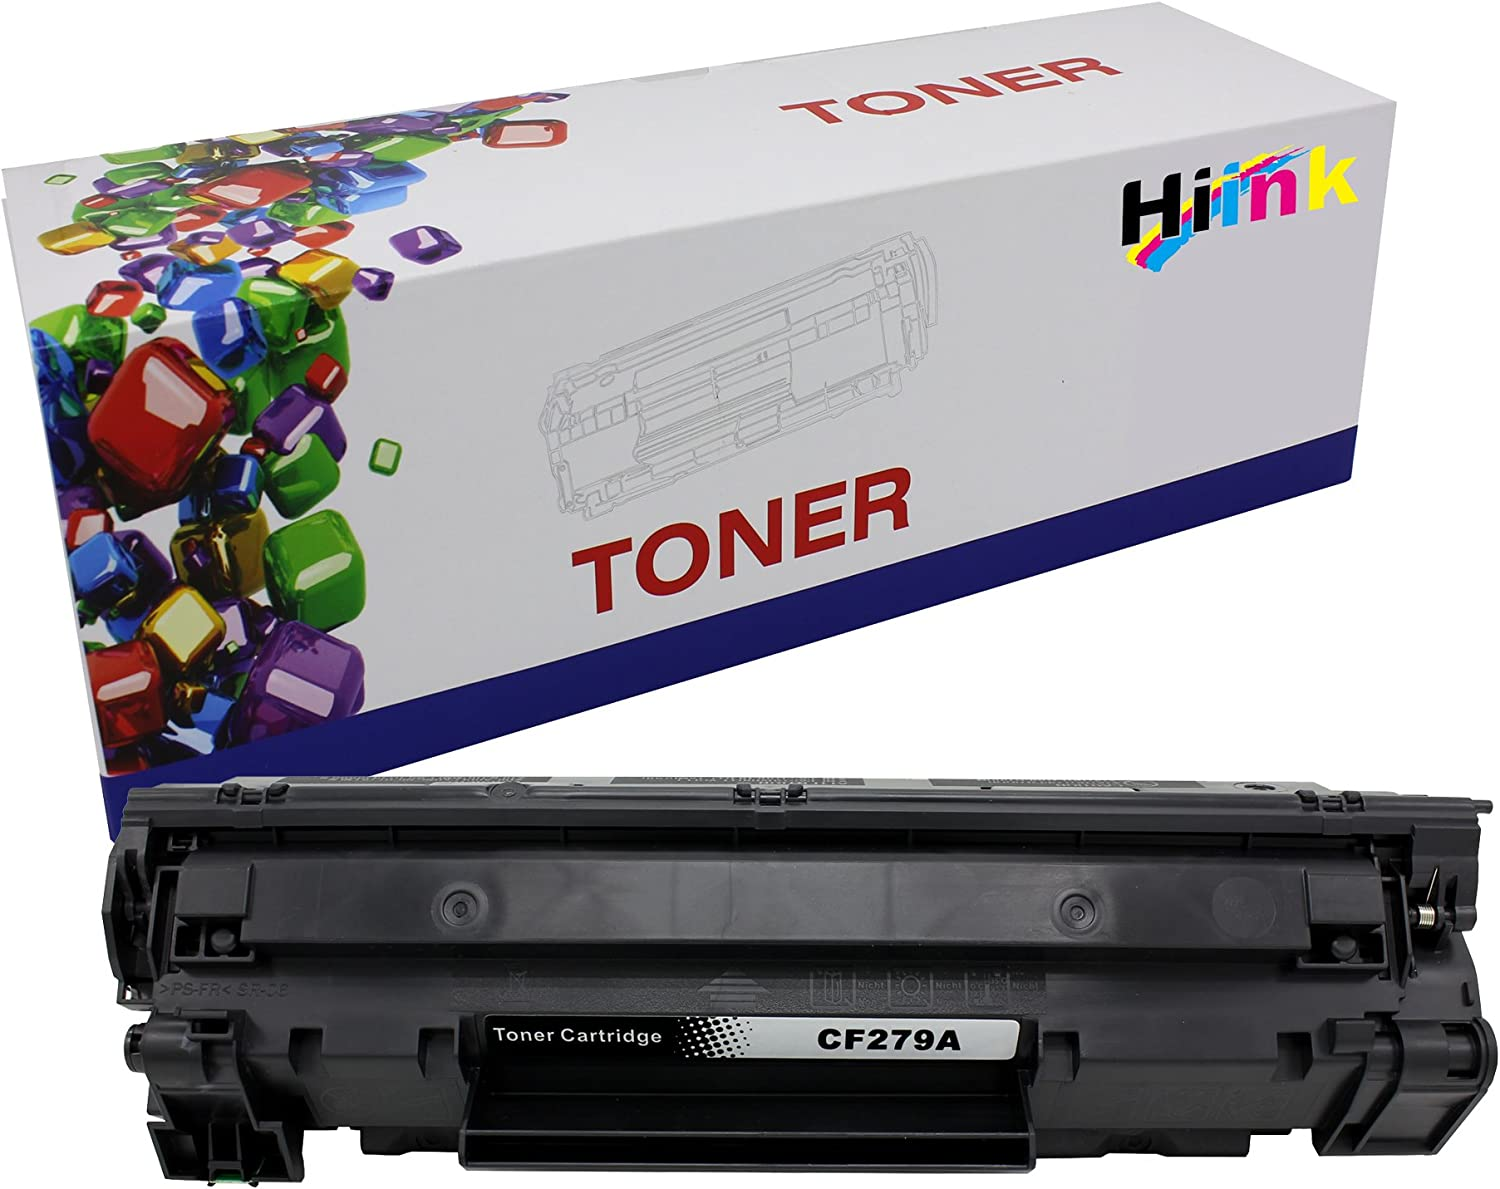 HIINK Compatible Toner Cartridge Replacement for HP CF279A 79A Toner Cartridge for Laserjet Pro M12a M12w MFP M26a M26nw Printer(Black, 1-Pack)